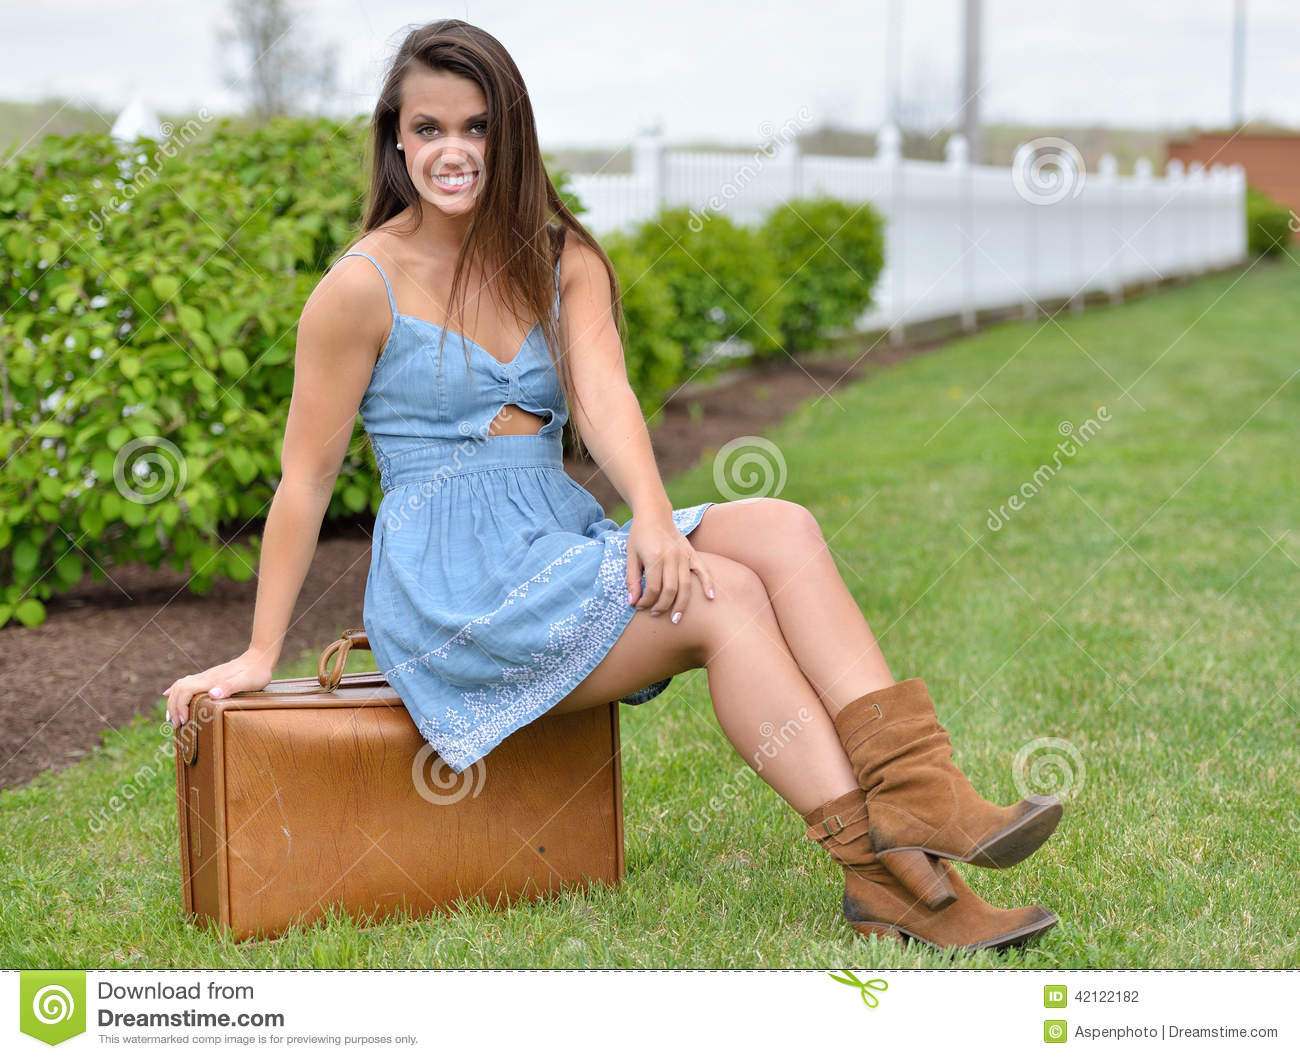 e85dbd01a19 Stunning Young Woman In Sundress With Suitcase Stock Photo - Image ...